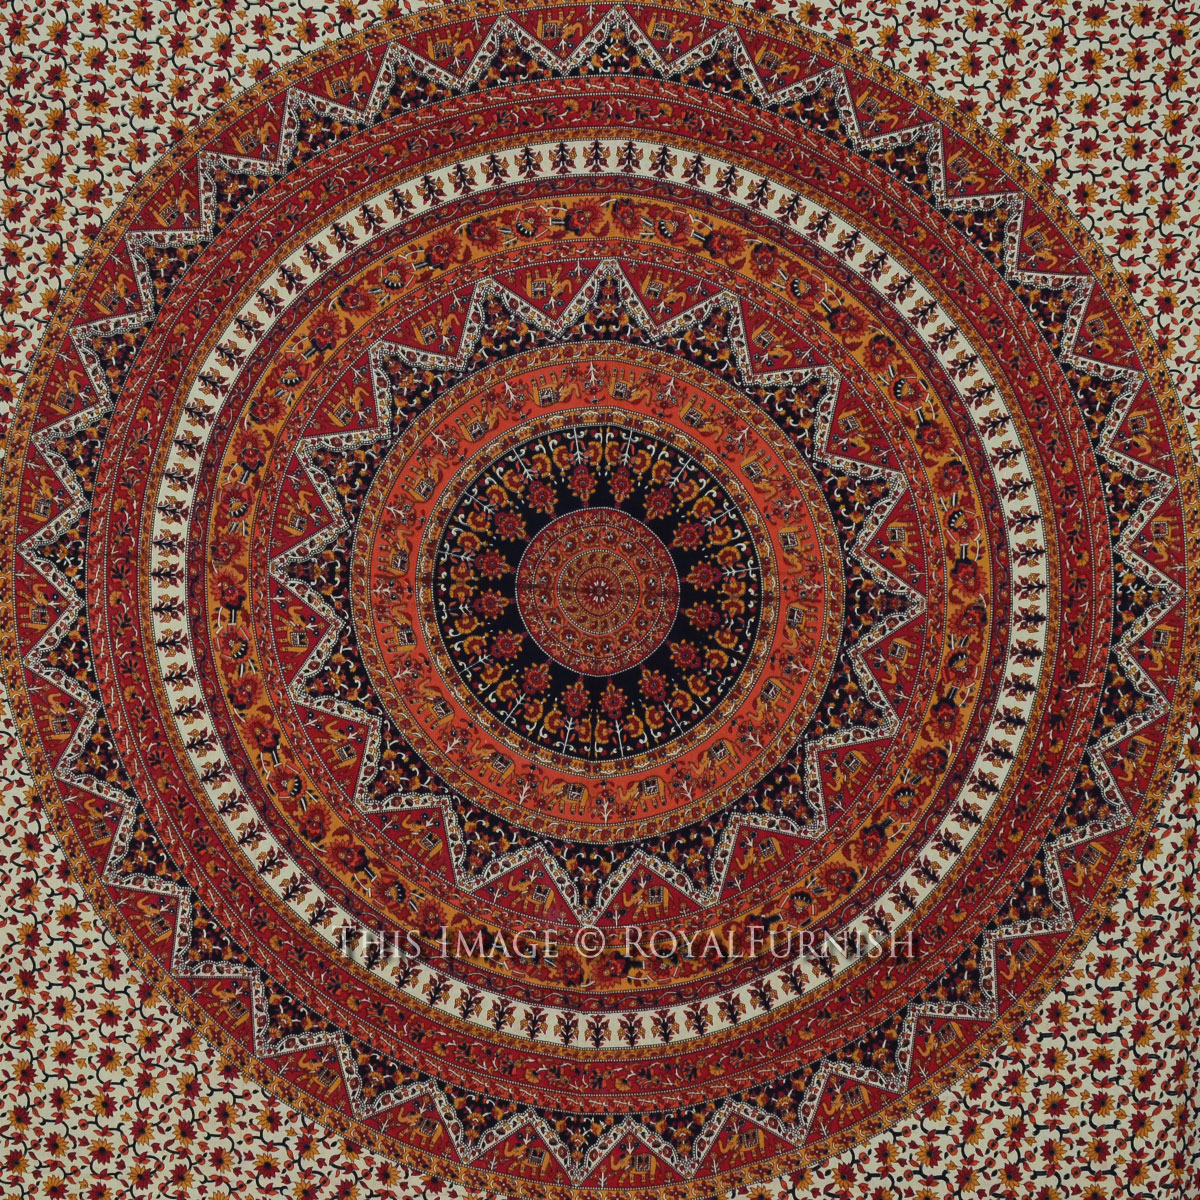 Queen Red Psychedelic Bohemian Hippie Mandala Tapestry ...